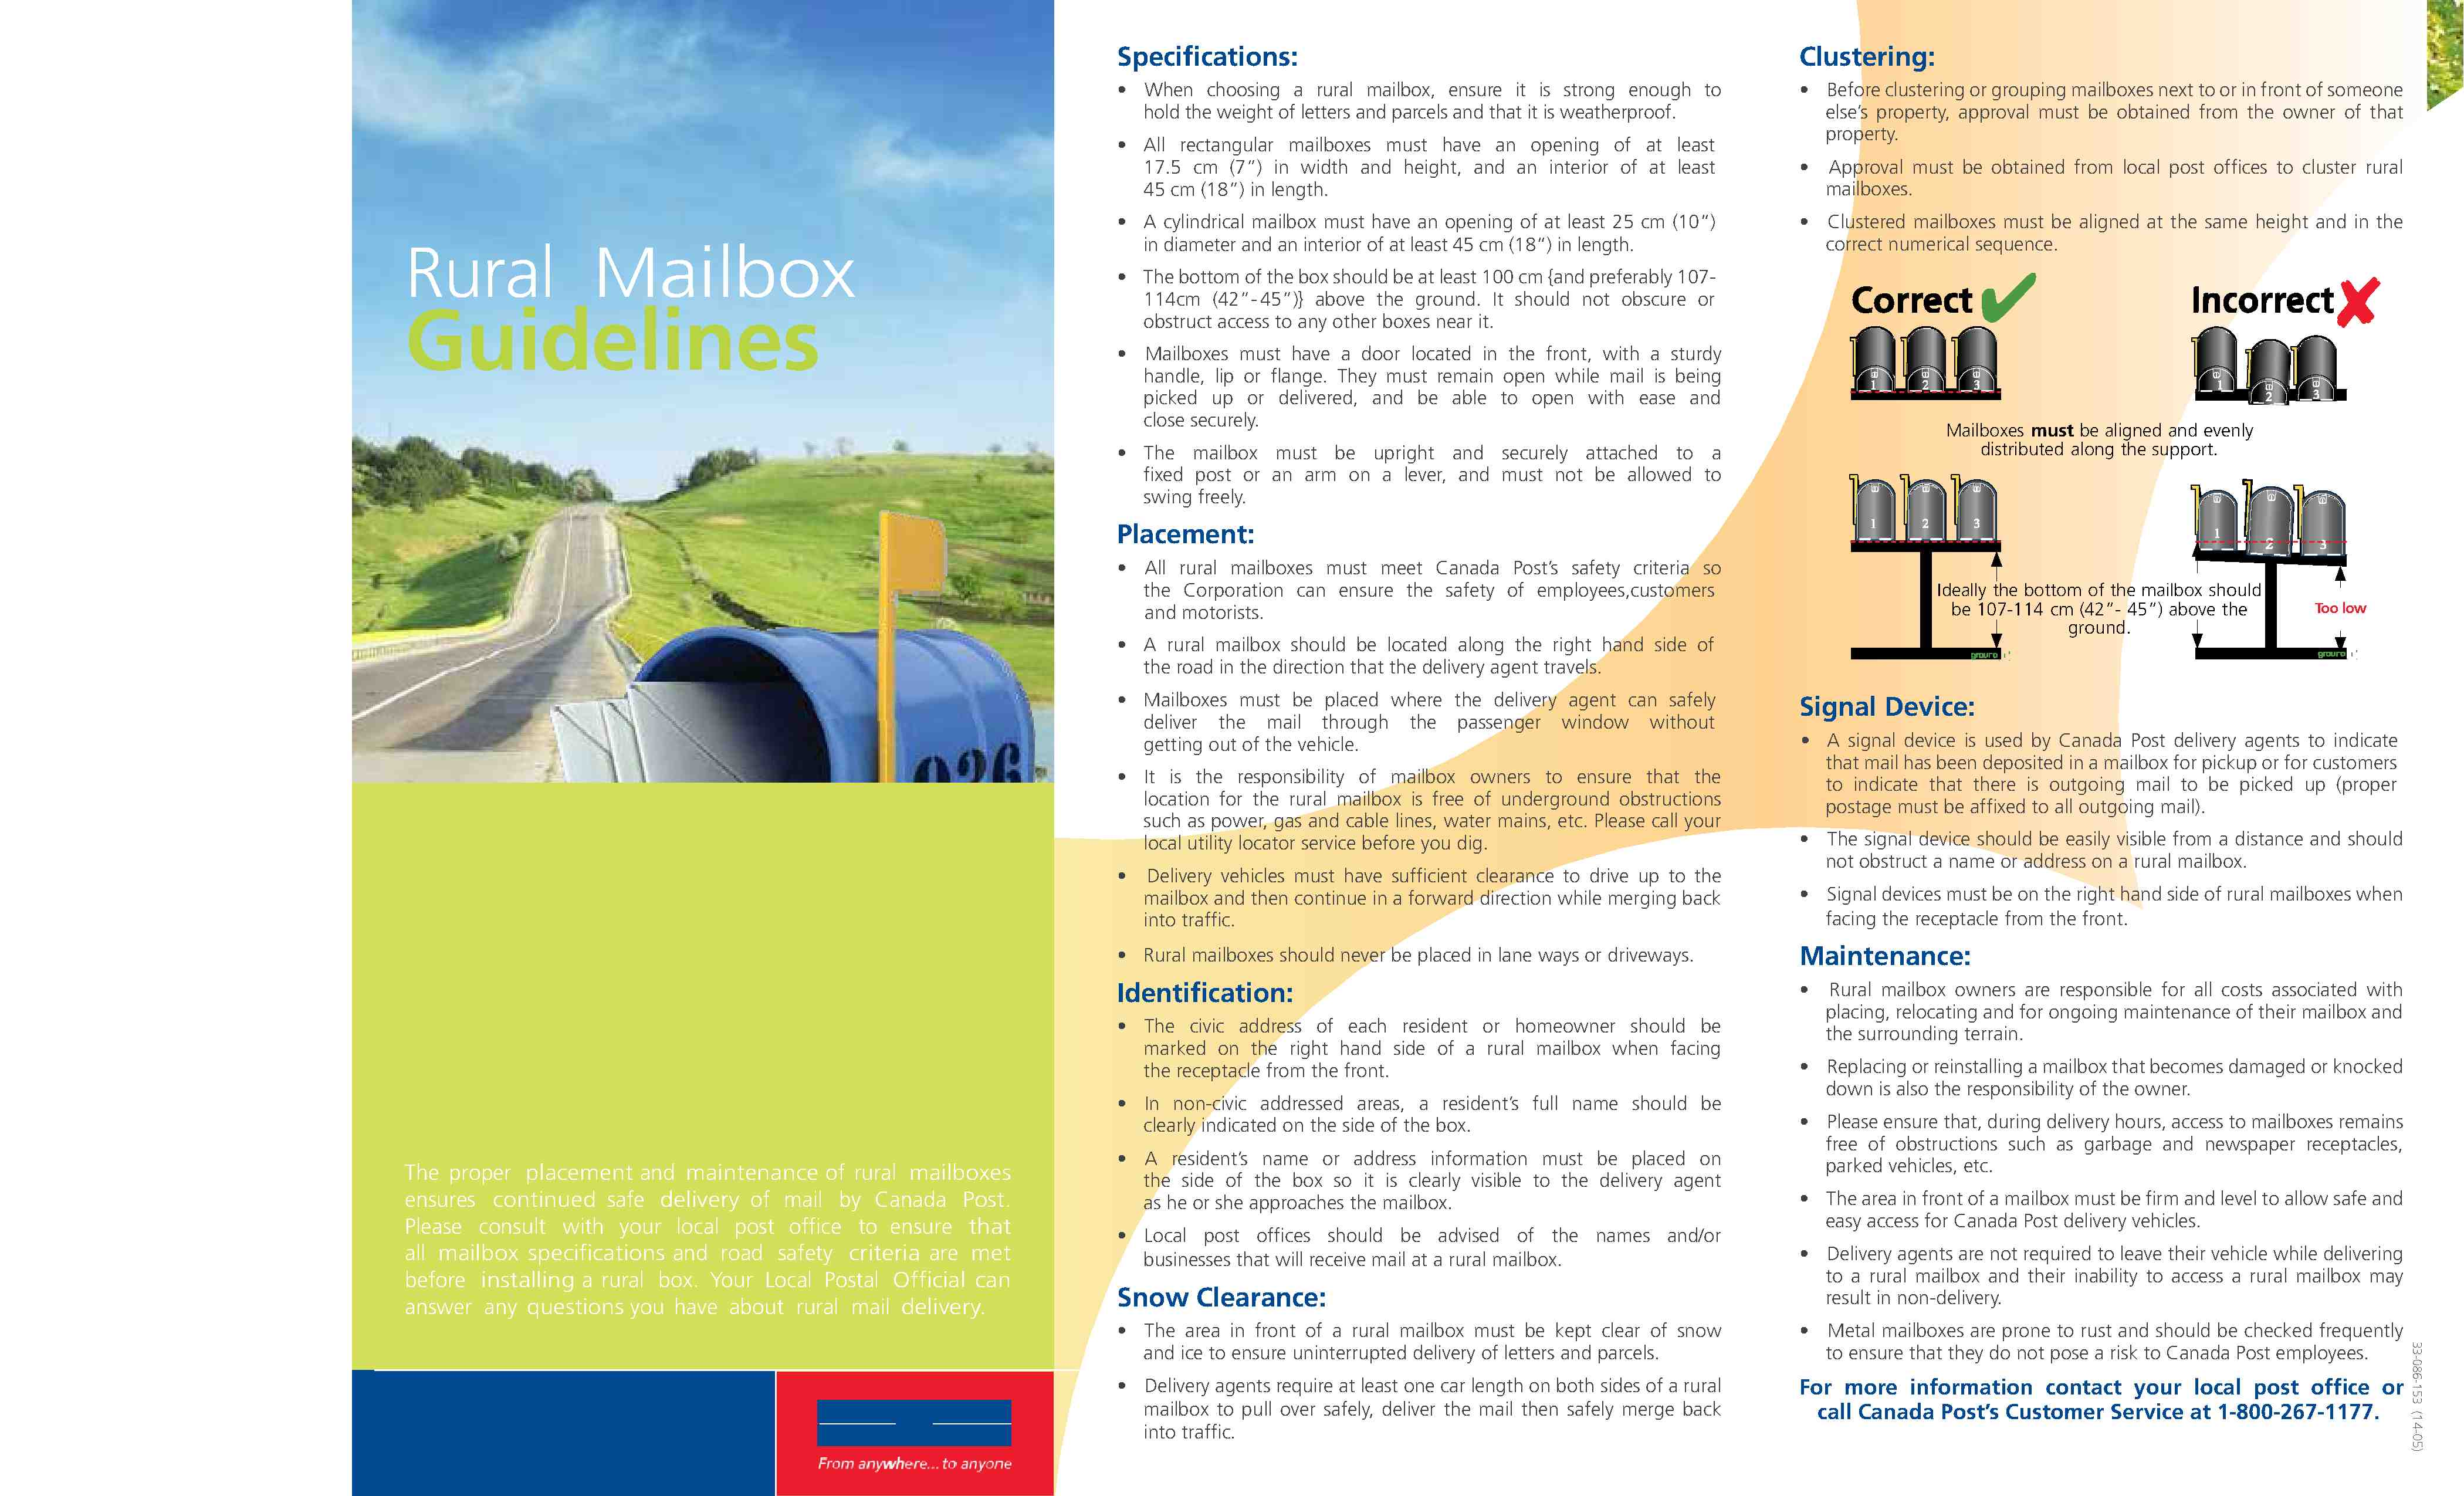 specs for rural mailboxes